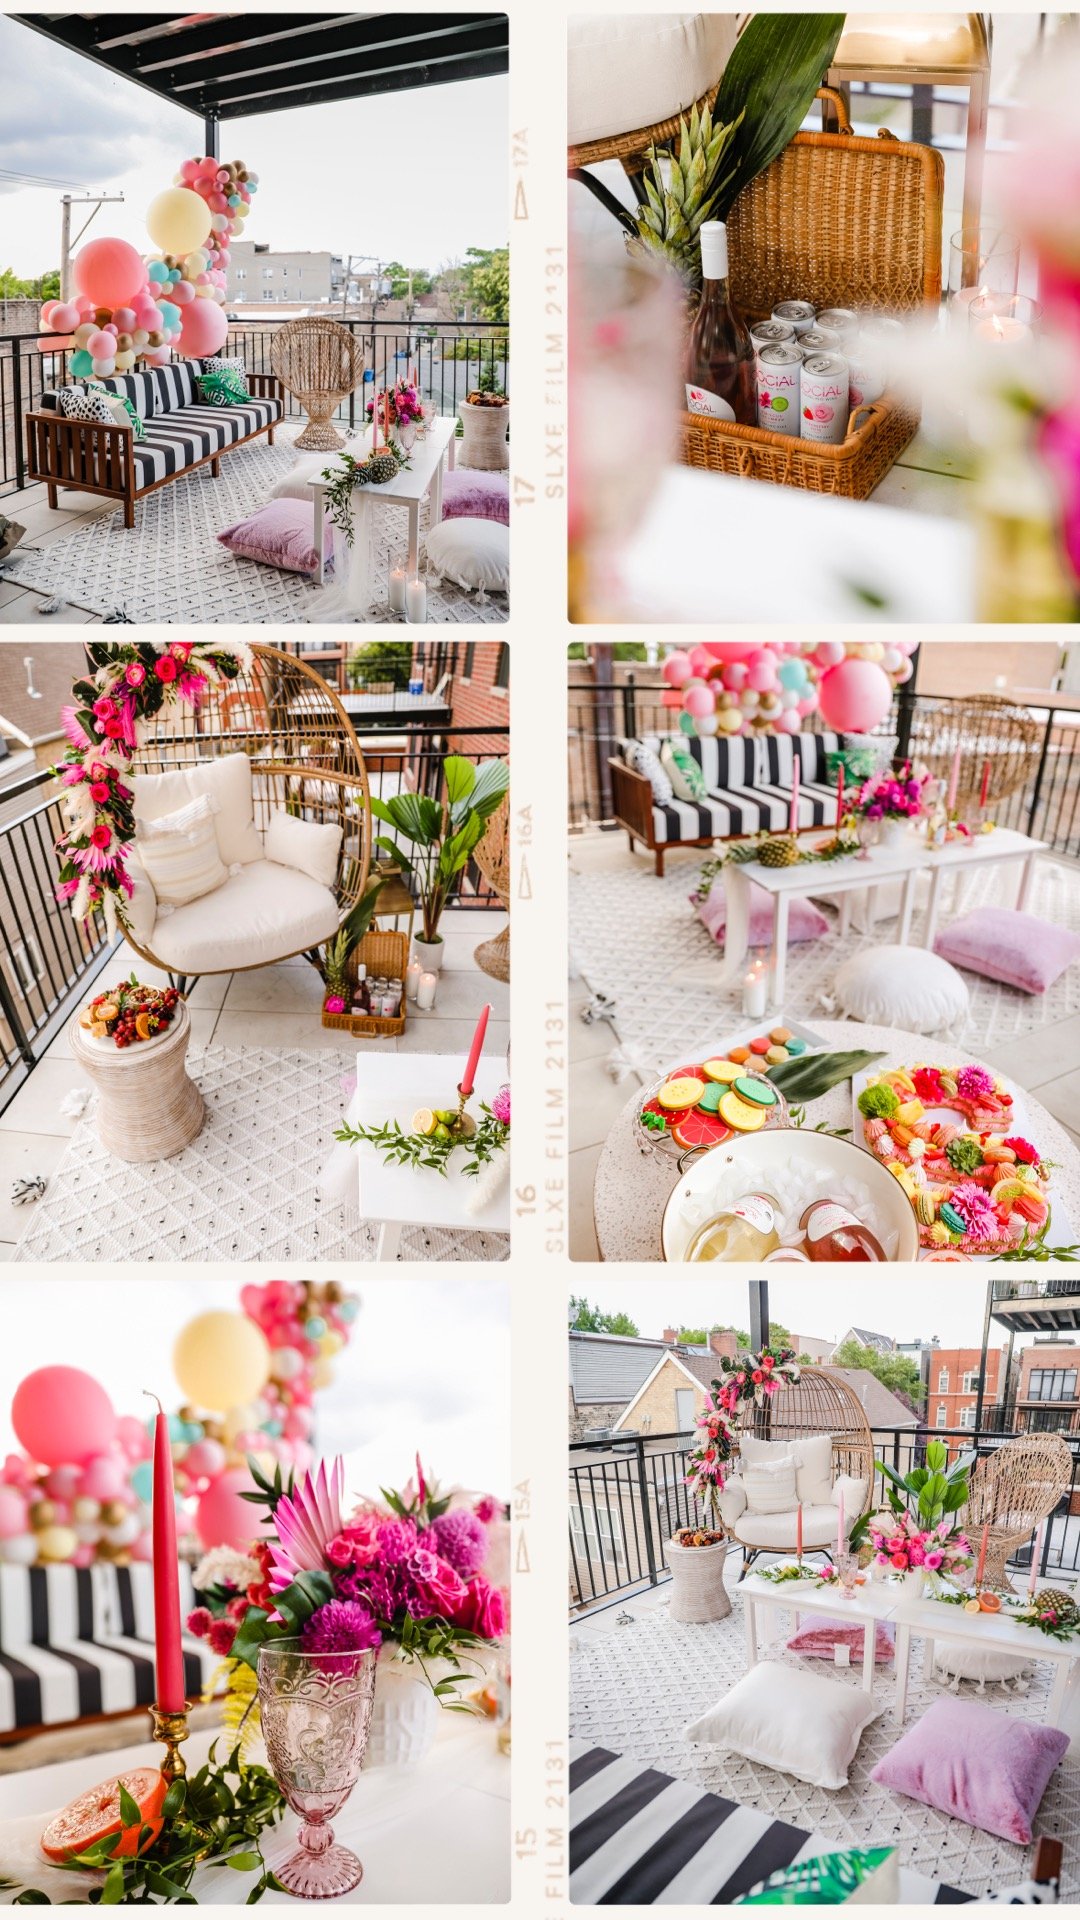 glam patio inspo, glam patio party, instagrammable parties, best patio party inspiration, jennifer worman home, stripe couch patio, best patio decor, best patio design, chicago blogger, chicago home, Jennifer worman, balloon arch inspiration